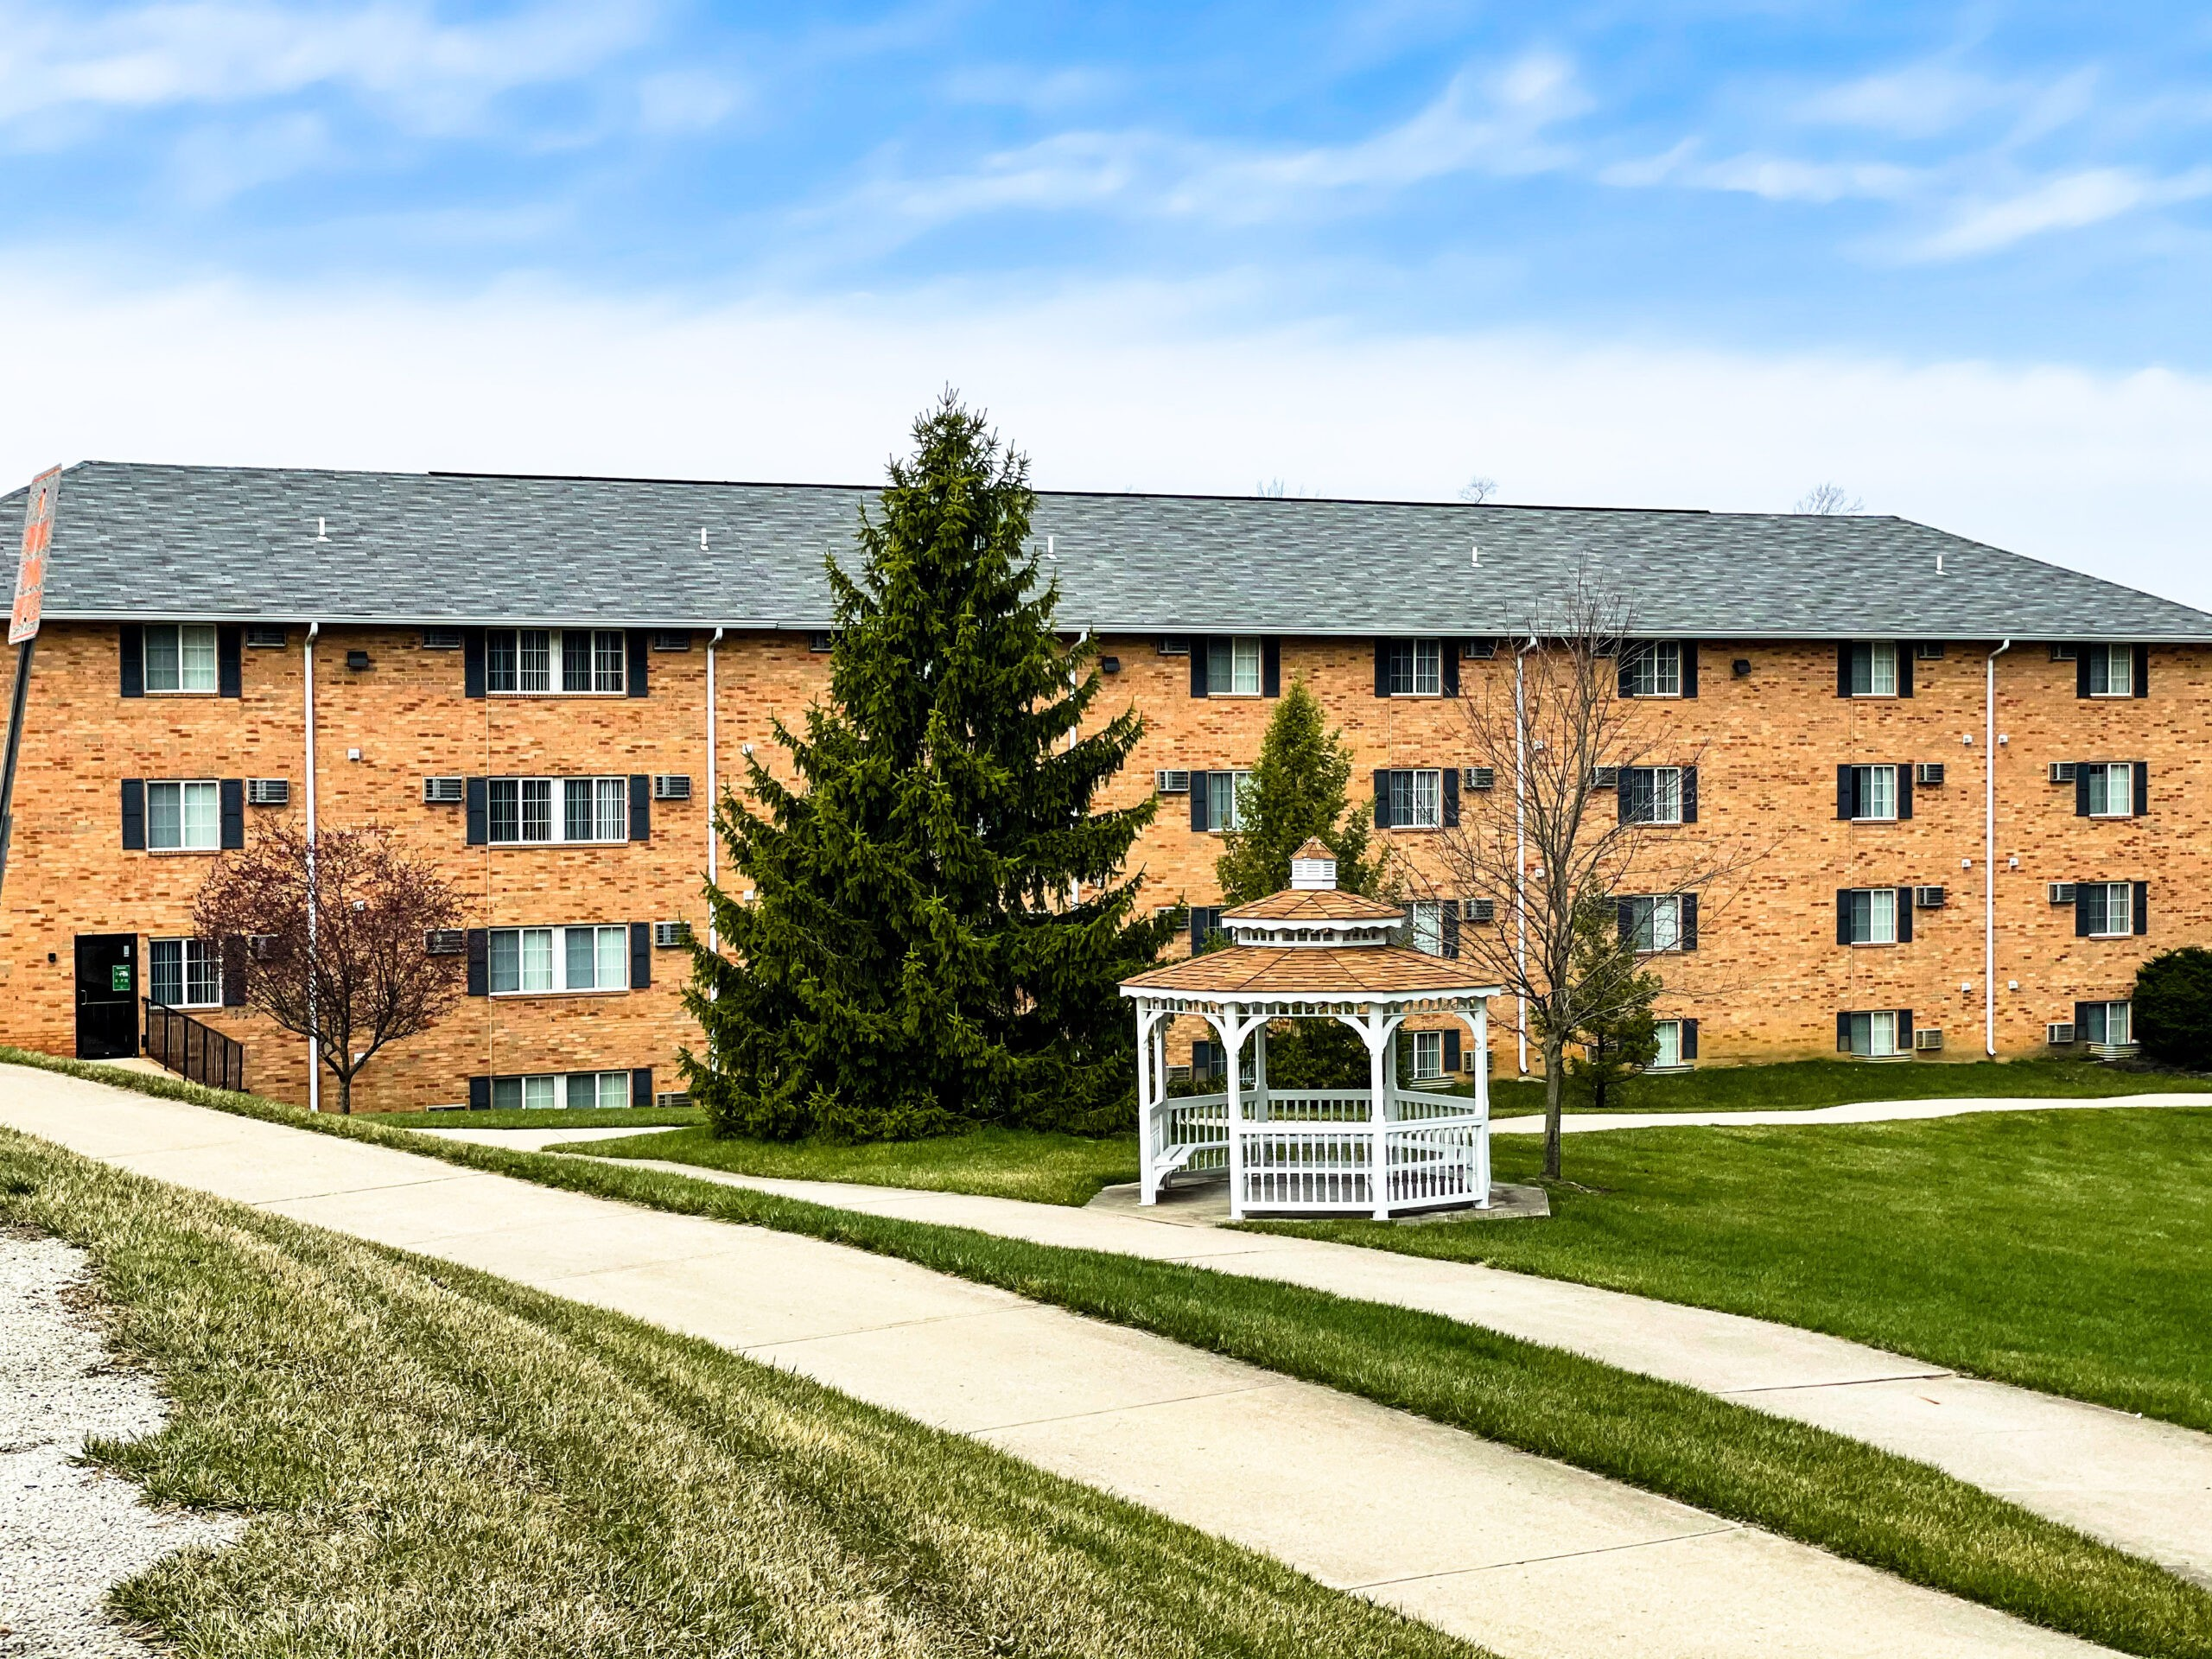 The Woods Residence Halls